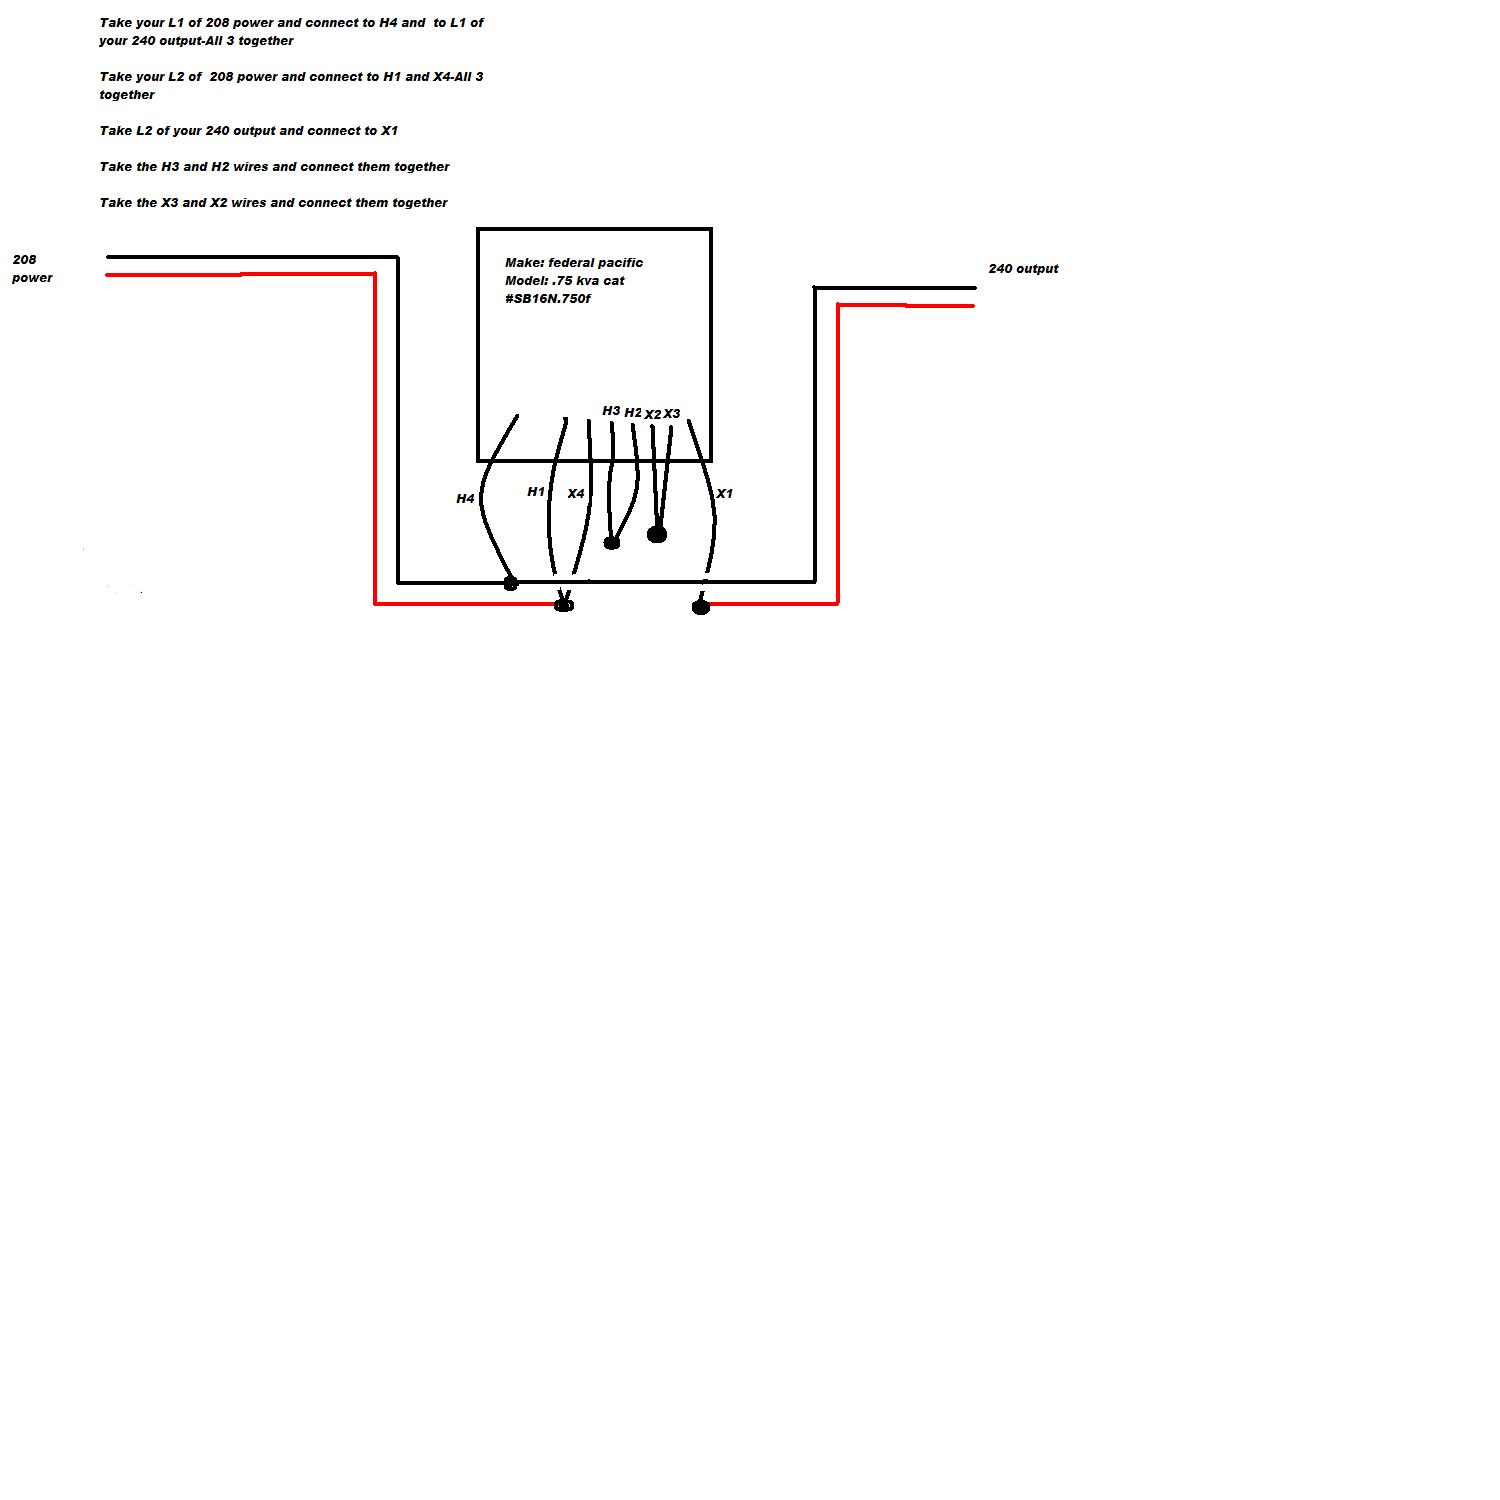 hight resolution of federal pacific buck boost transformer wiring diagram federal pacific transformer wiring diagram example electrical 12m